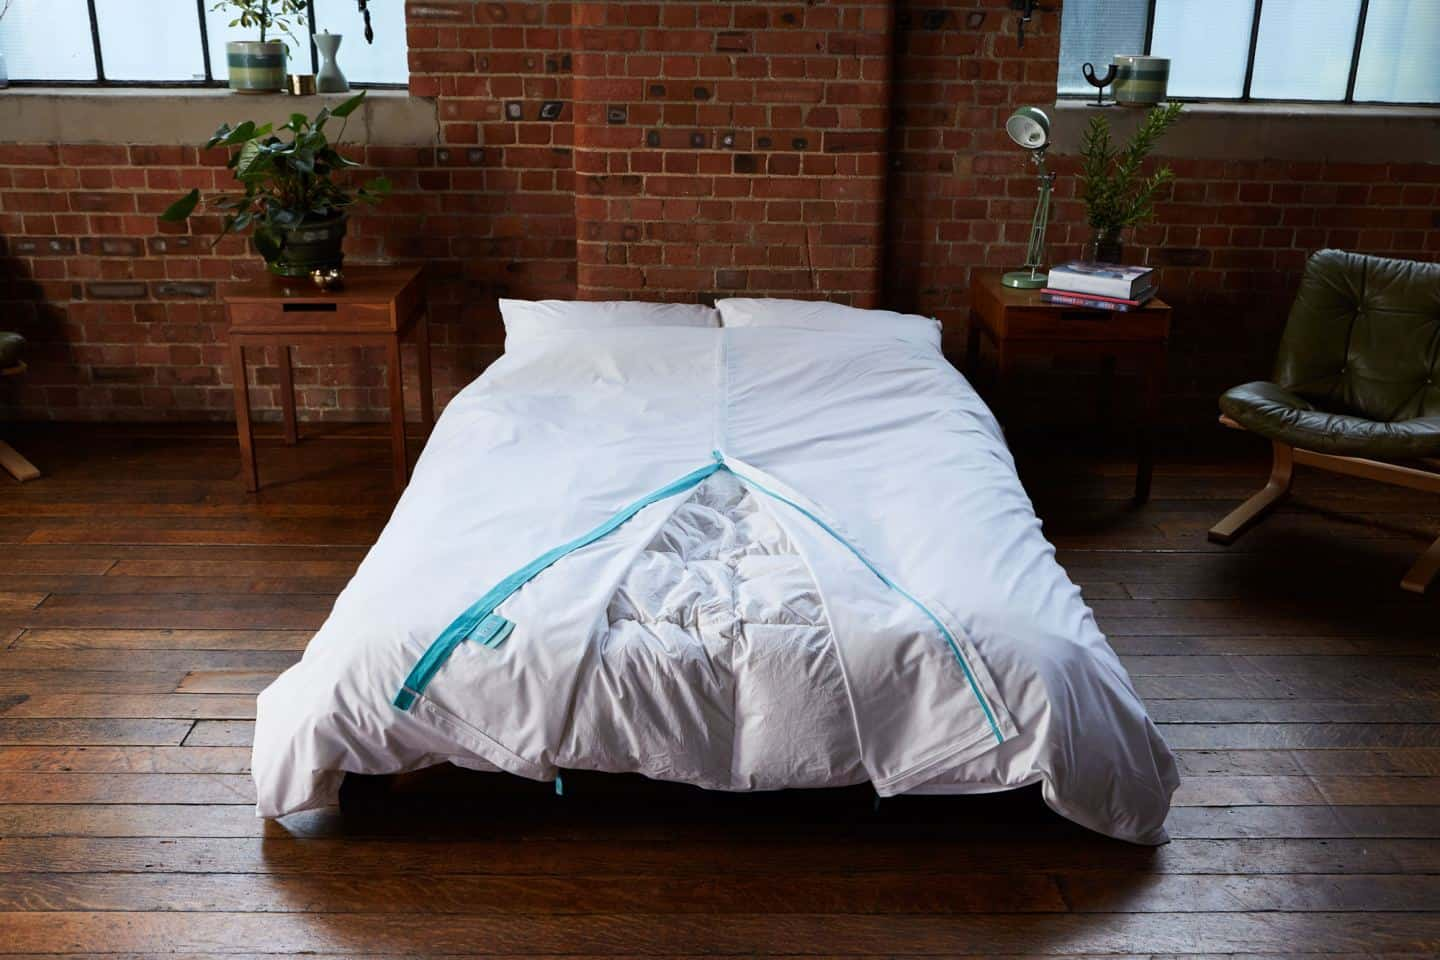 Koa revolutionary duvet cover shown in an industrial loft bedroom. The white duvet cover would be perfect for hotels. The easy way to change a duvet cover